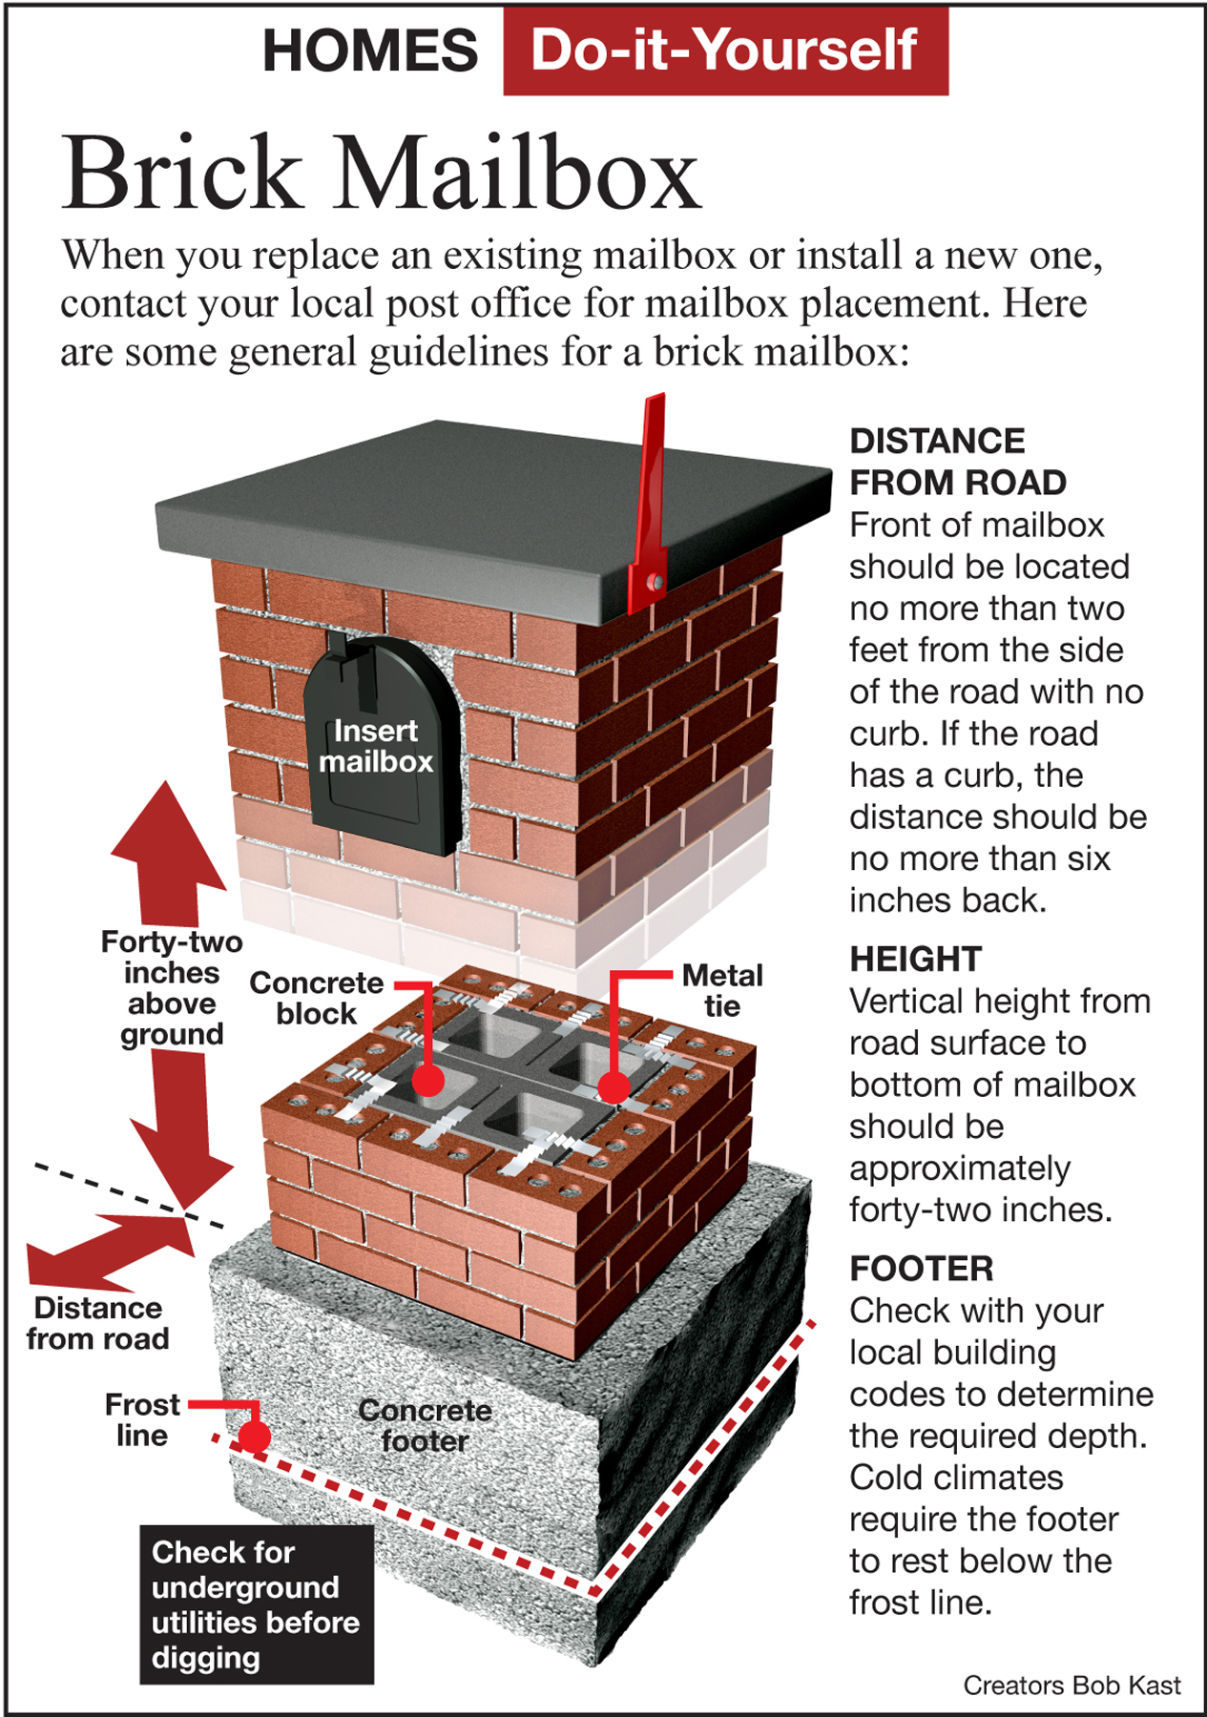 Build An Indestructible Brick Mailbox Siouxland Homes Siouxcityjournal Com